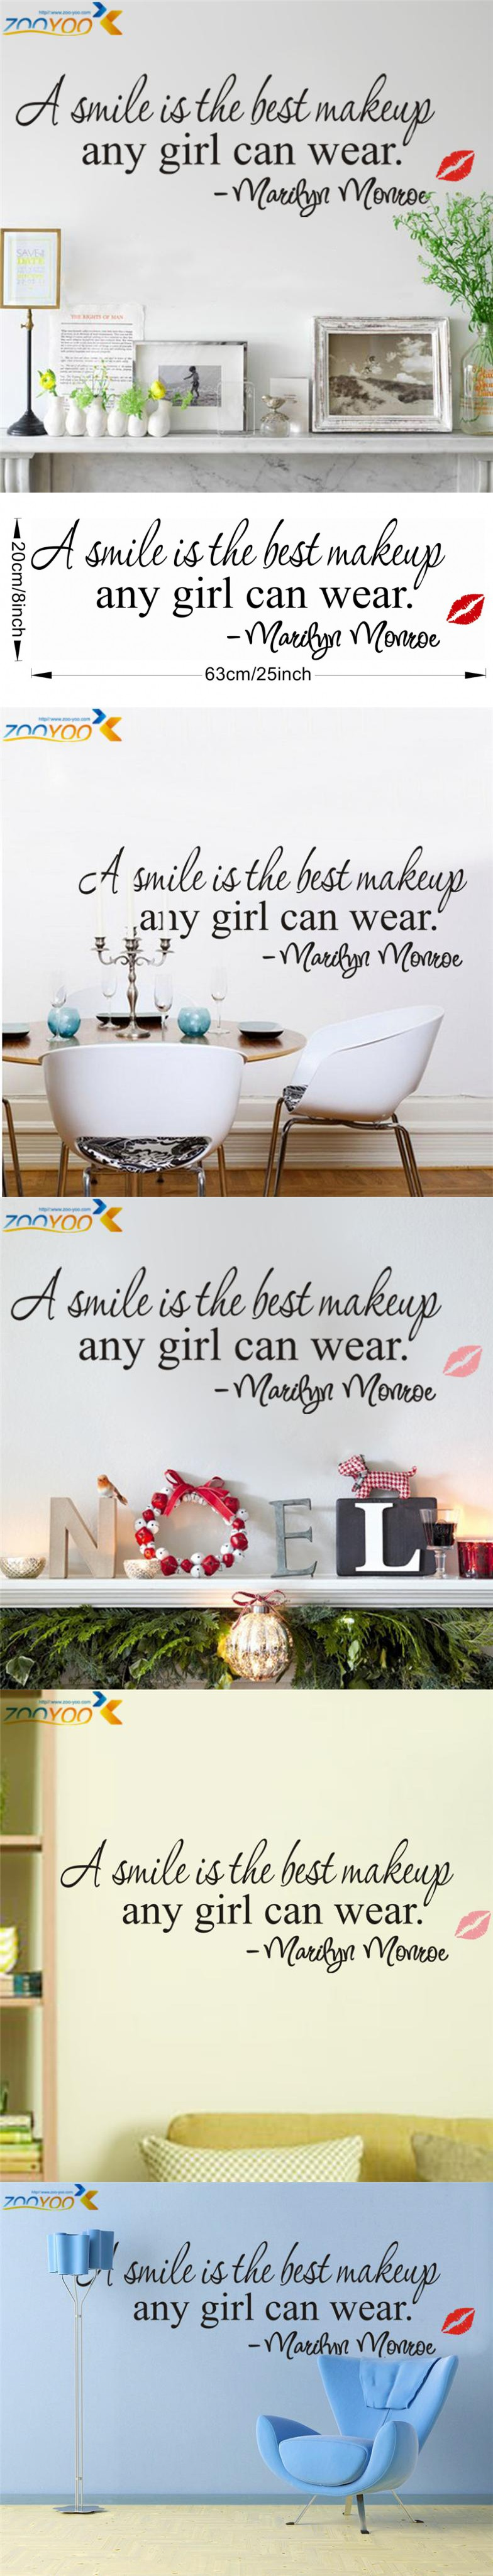 a smile is the best makeup home decor creative wall decals zooyoo8129 decorative adesivo de parede removable vinyl wall stickers $1.98